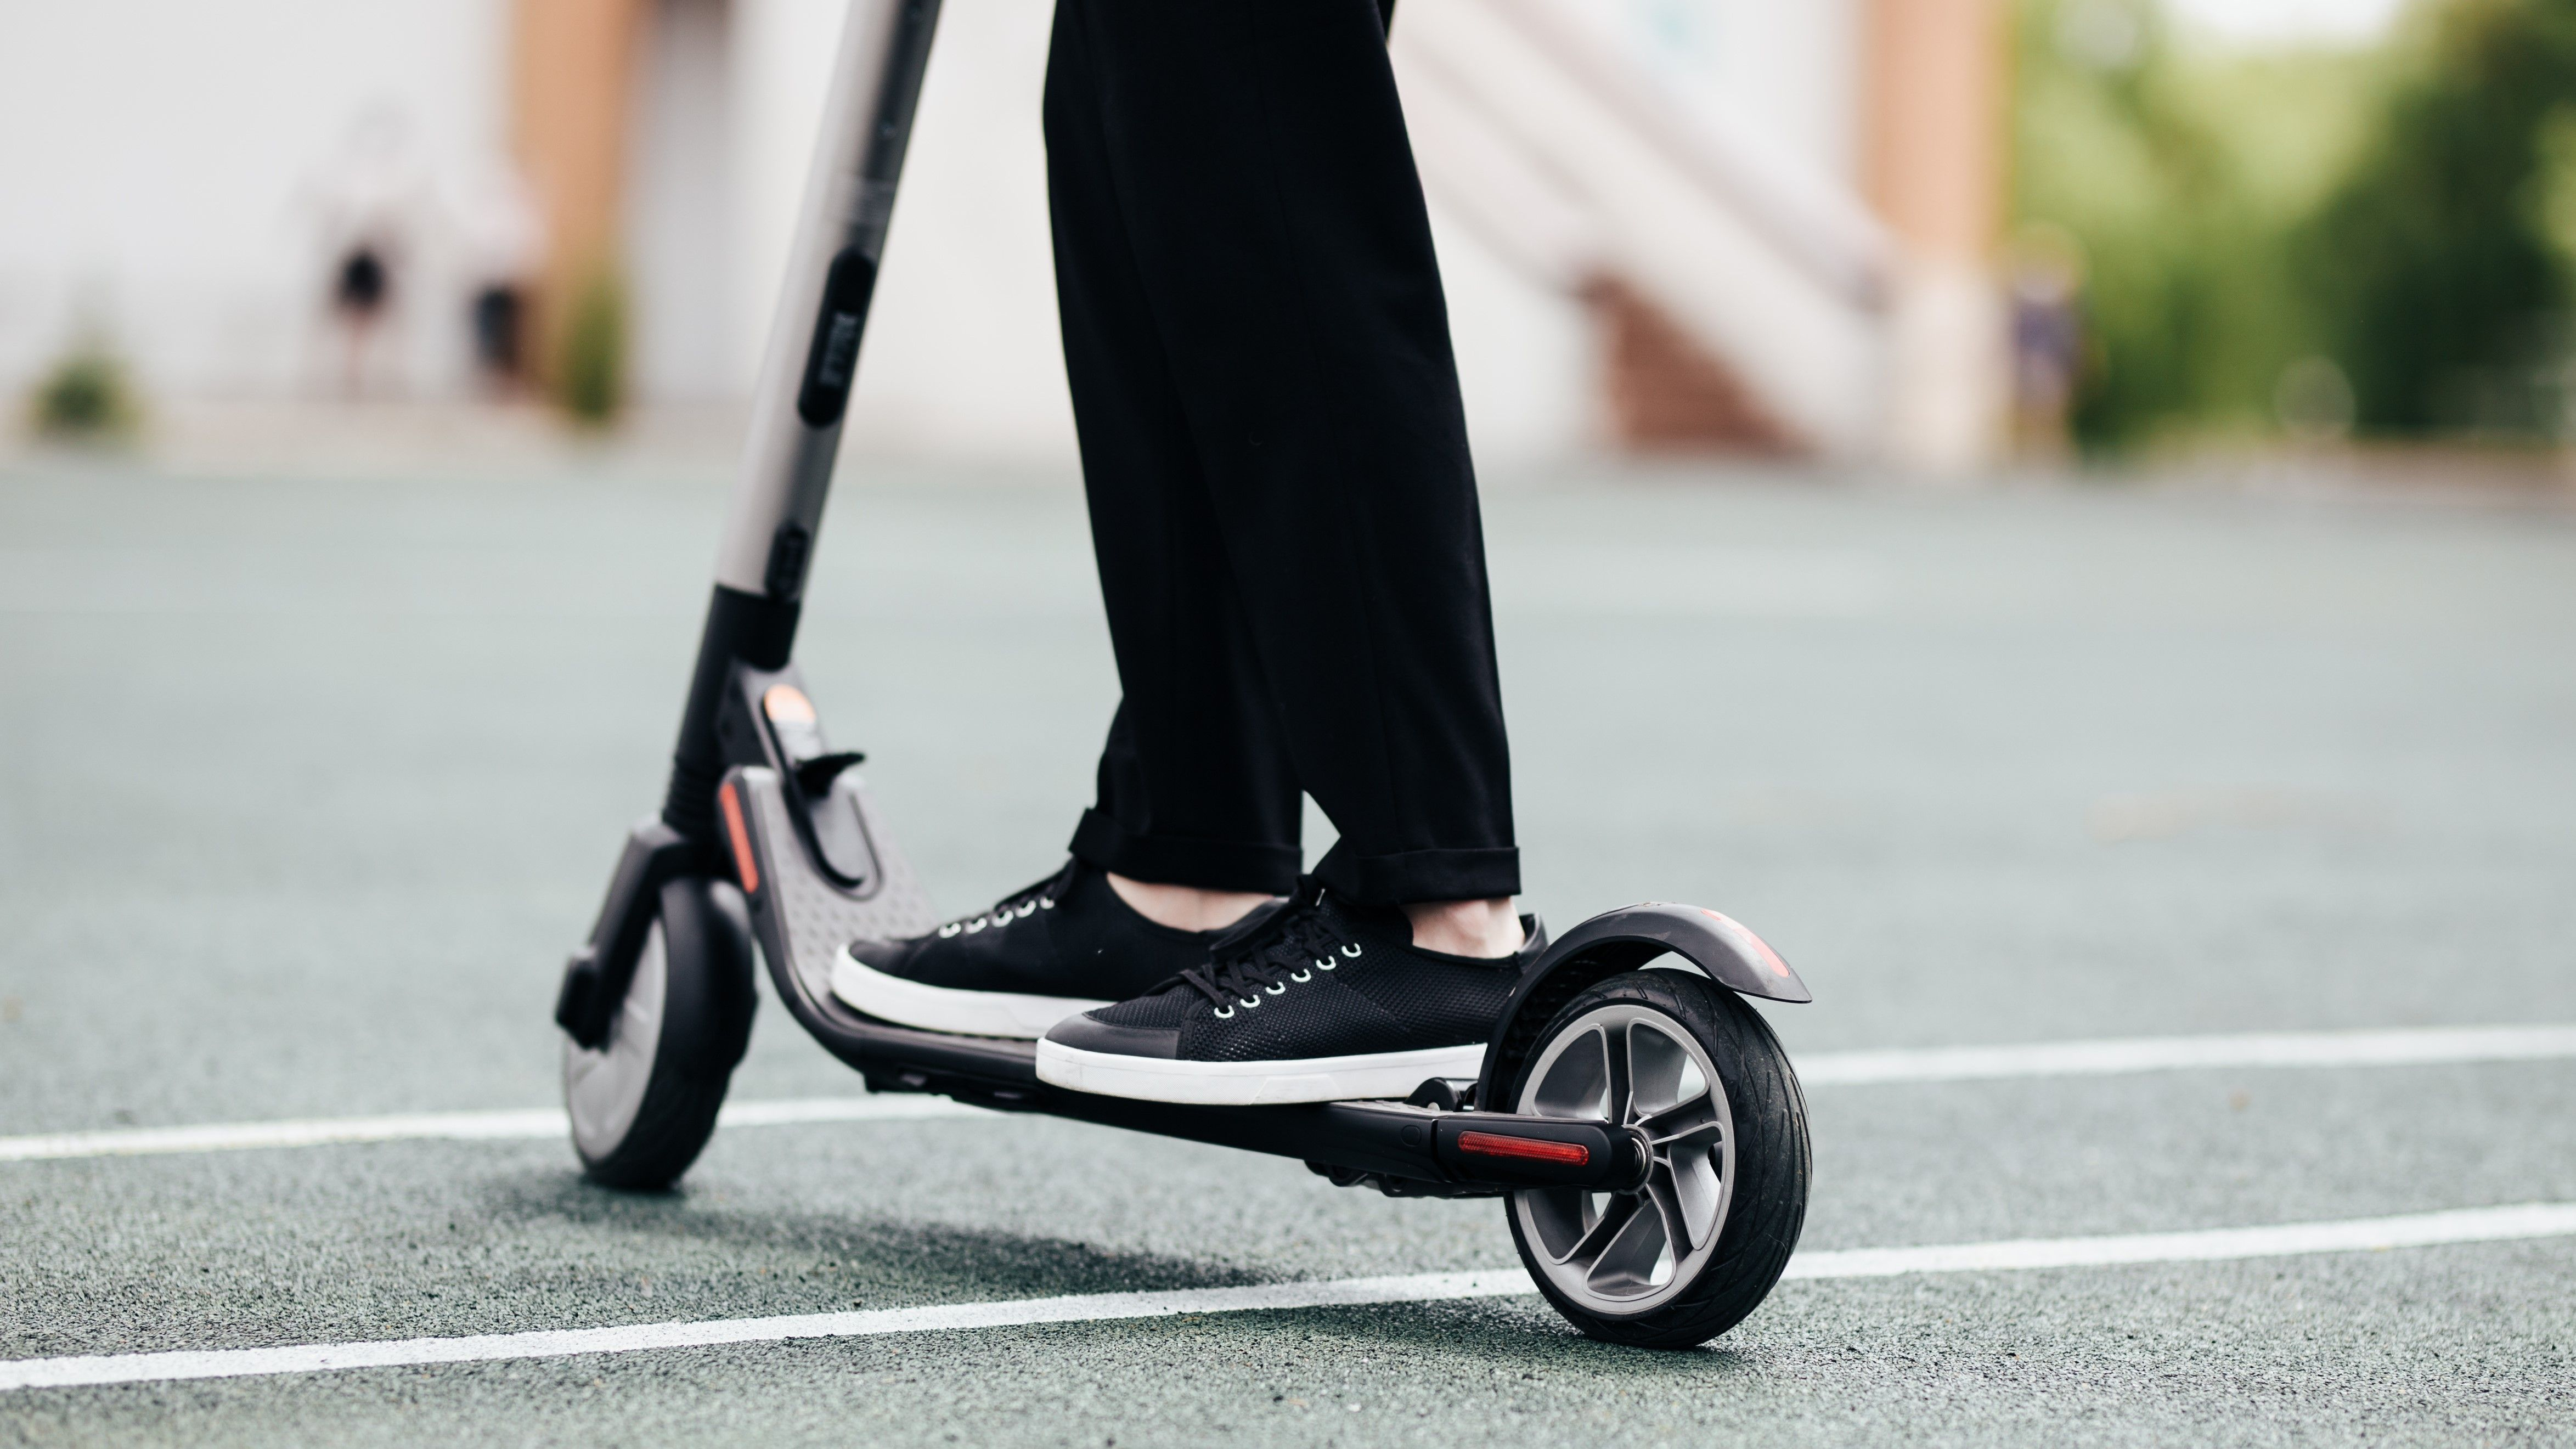 The Best Electric Scooters 2020 Make Commuting Fast And Fun In 2020 Best Electric Scooter Electric Scooter Best Scooter